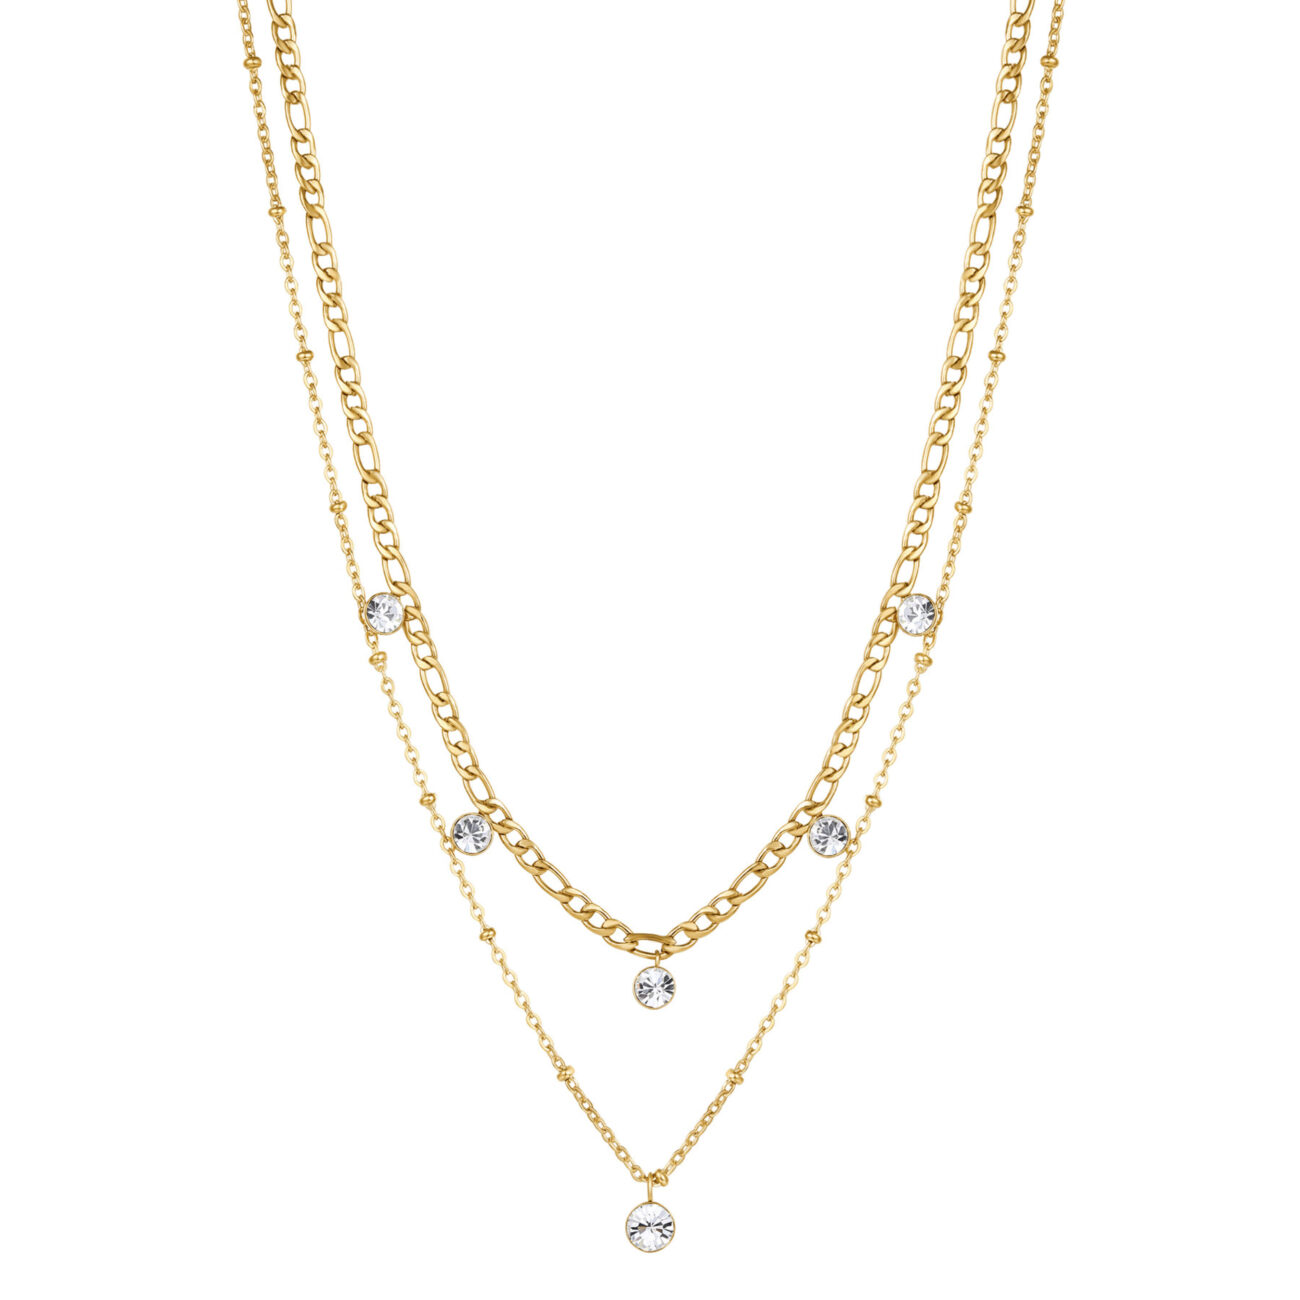 316L stainless steel double chain necklace, gold finishes with crystals.